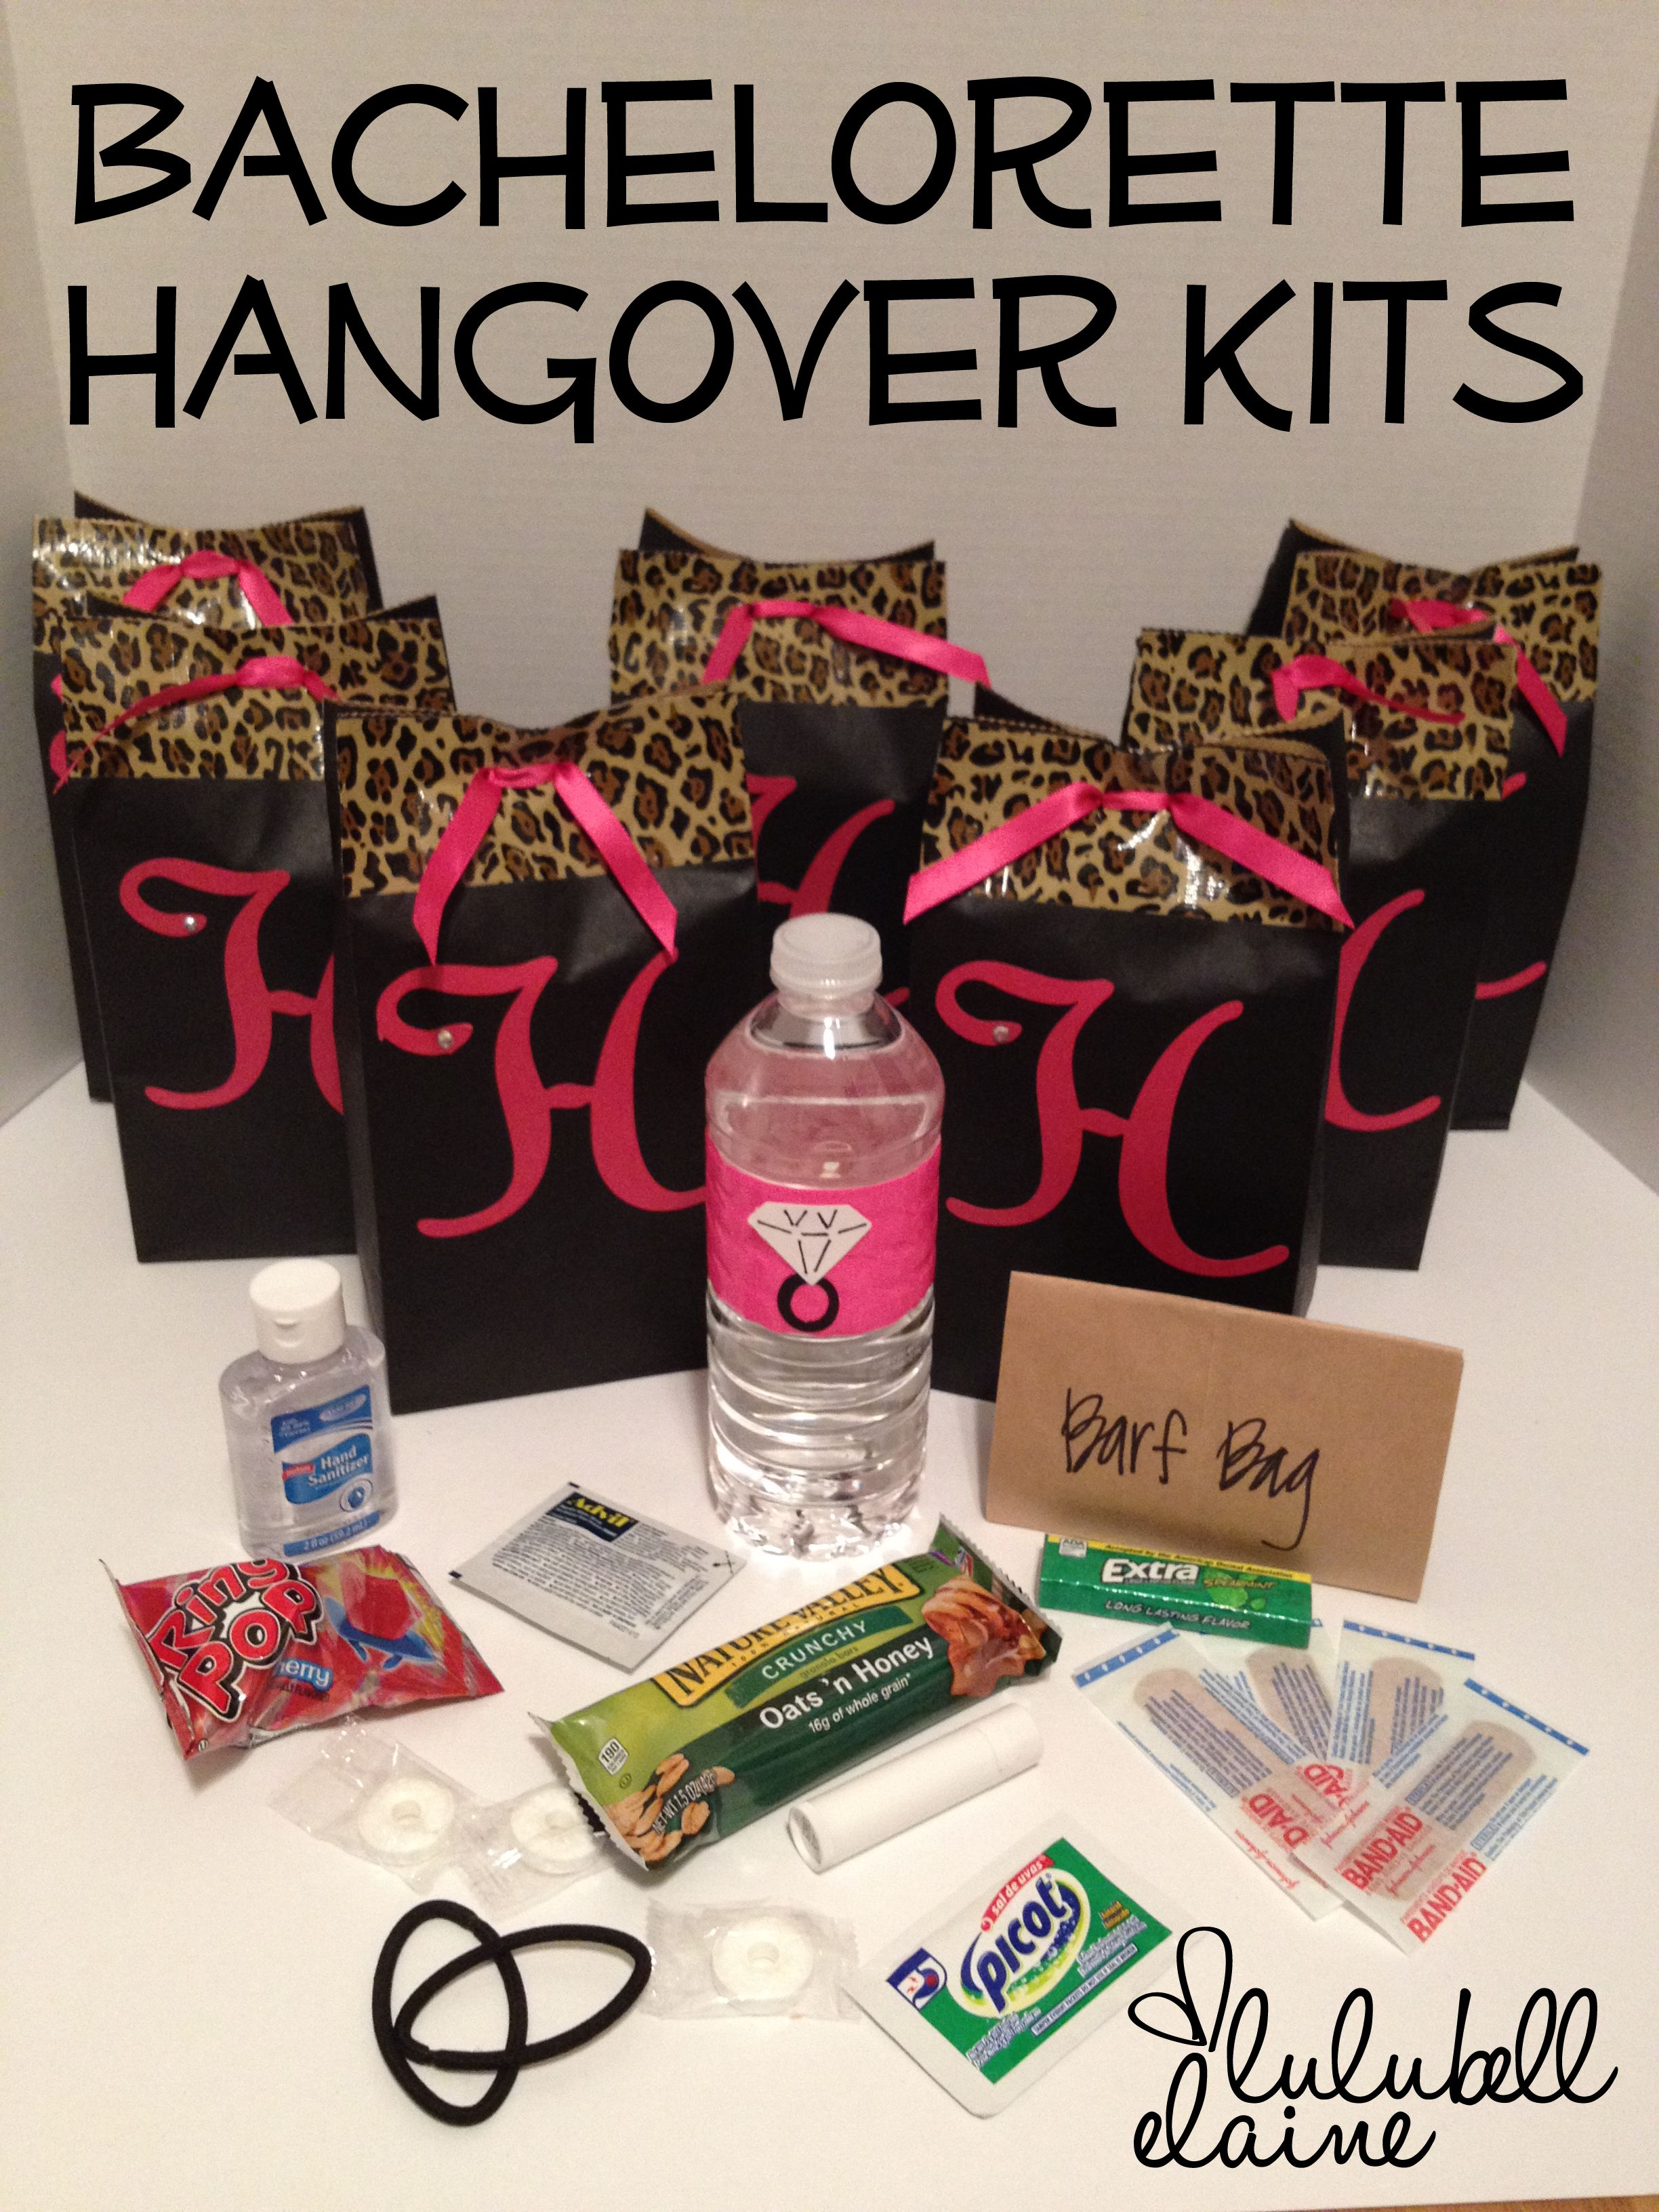 Bachelorette Party Diy Duct Tape Favor Bags And Hangover Kits Lulubell Elaine What A Cute Fun Idea